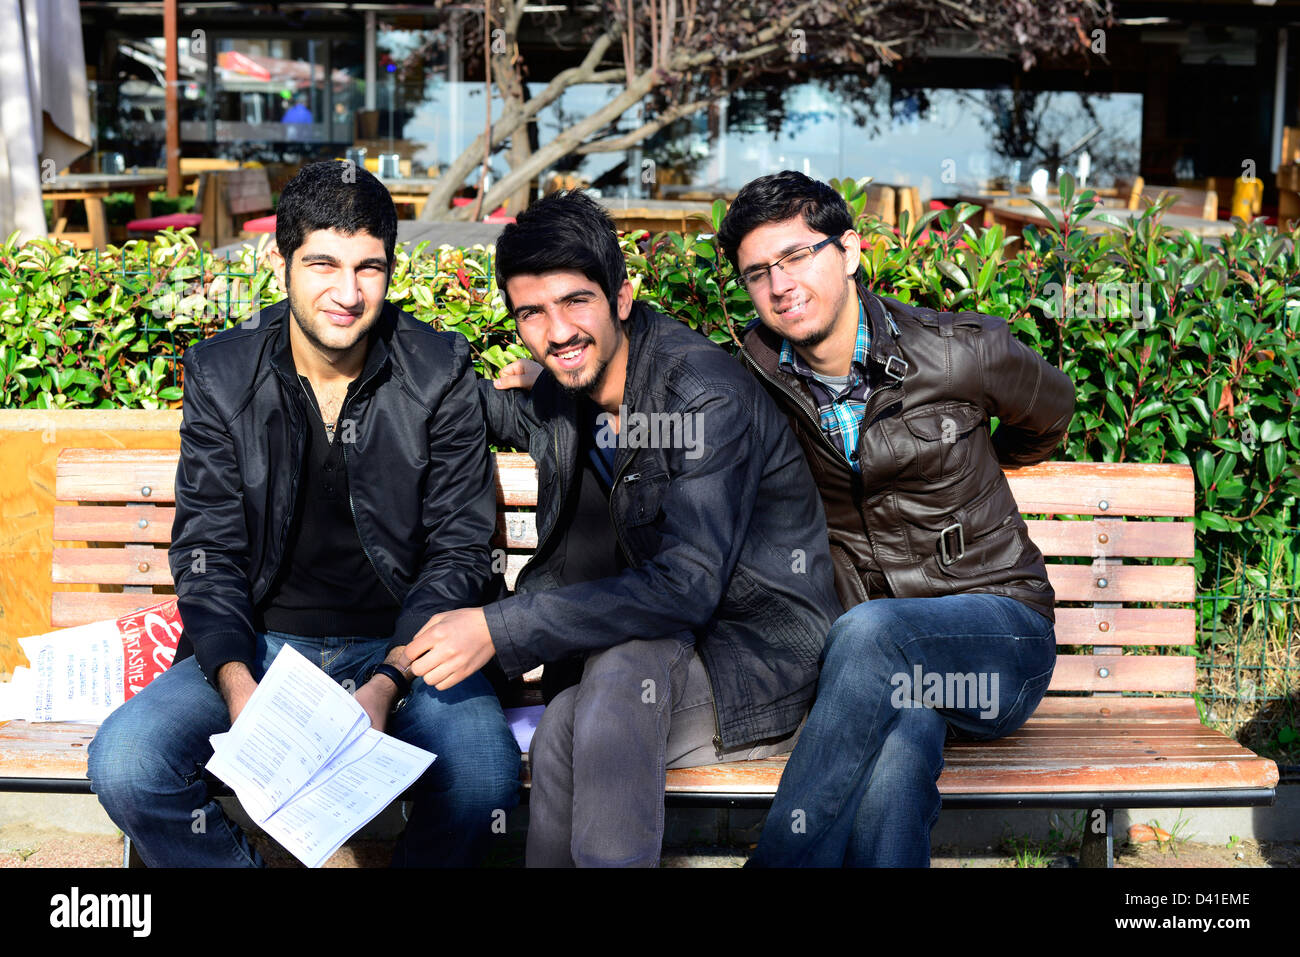 Turcos      - Página 6 Young-turkish-university-students-in-istanbul-D41EME